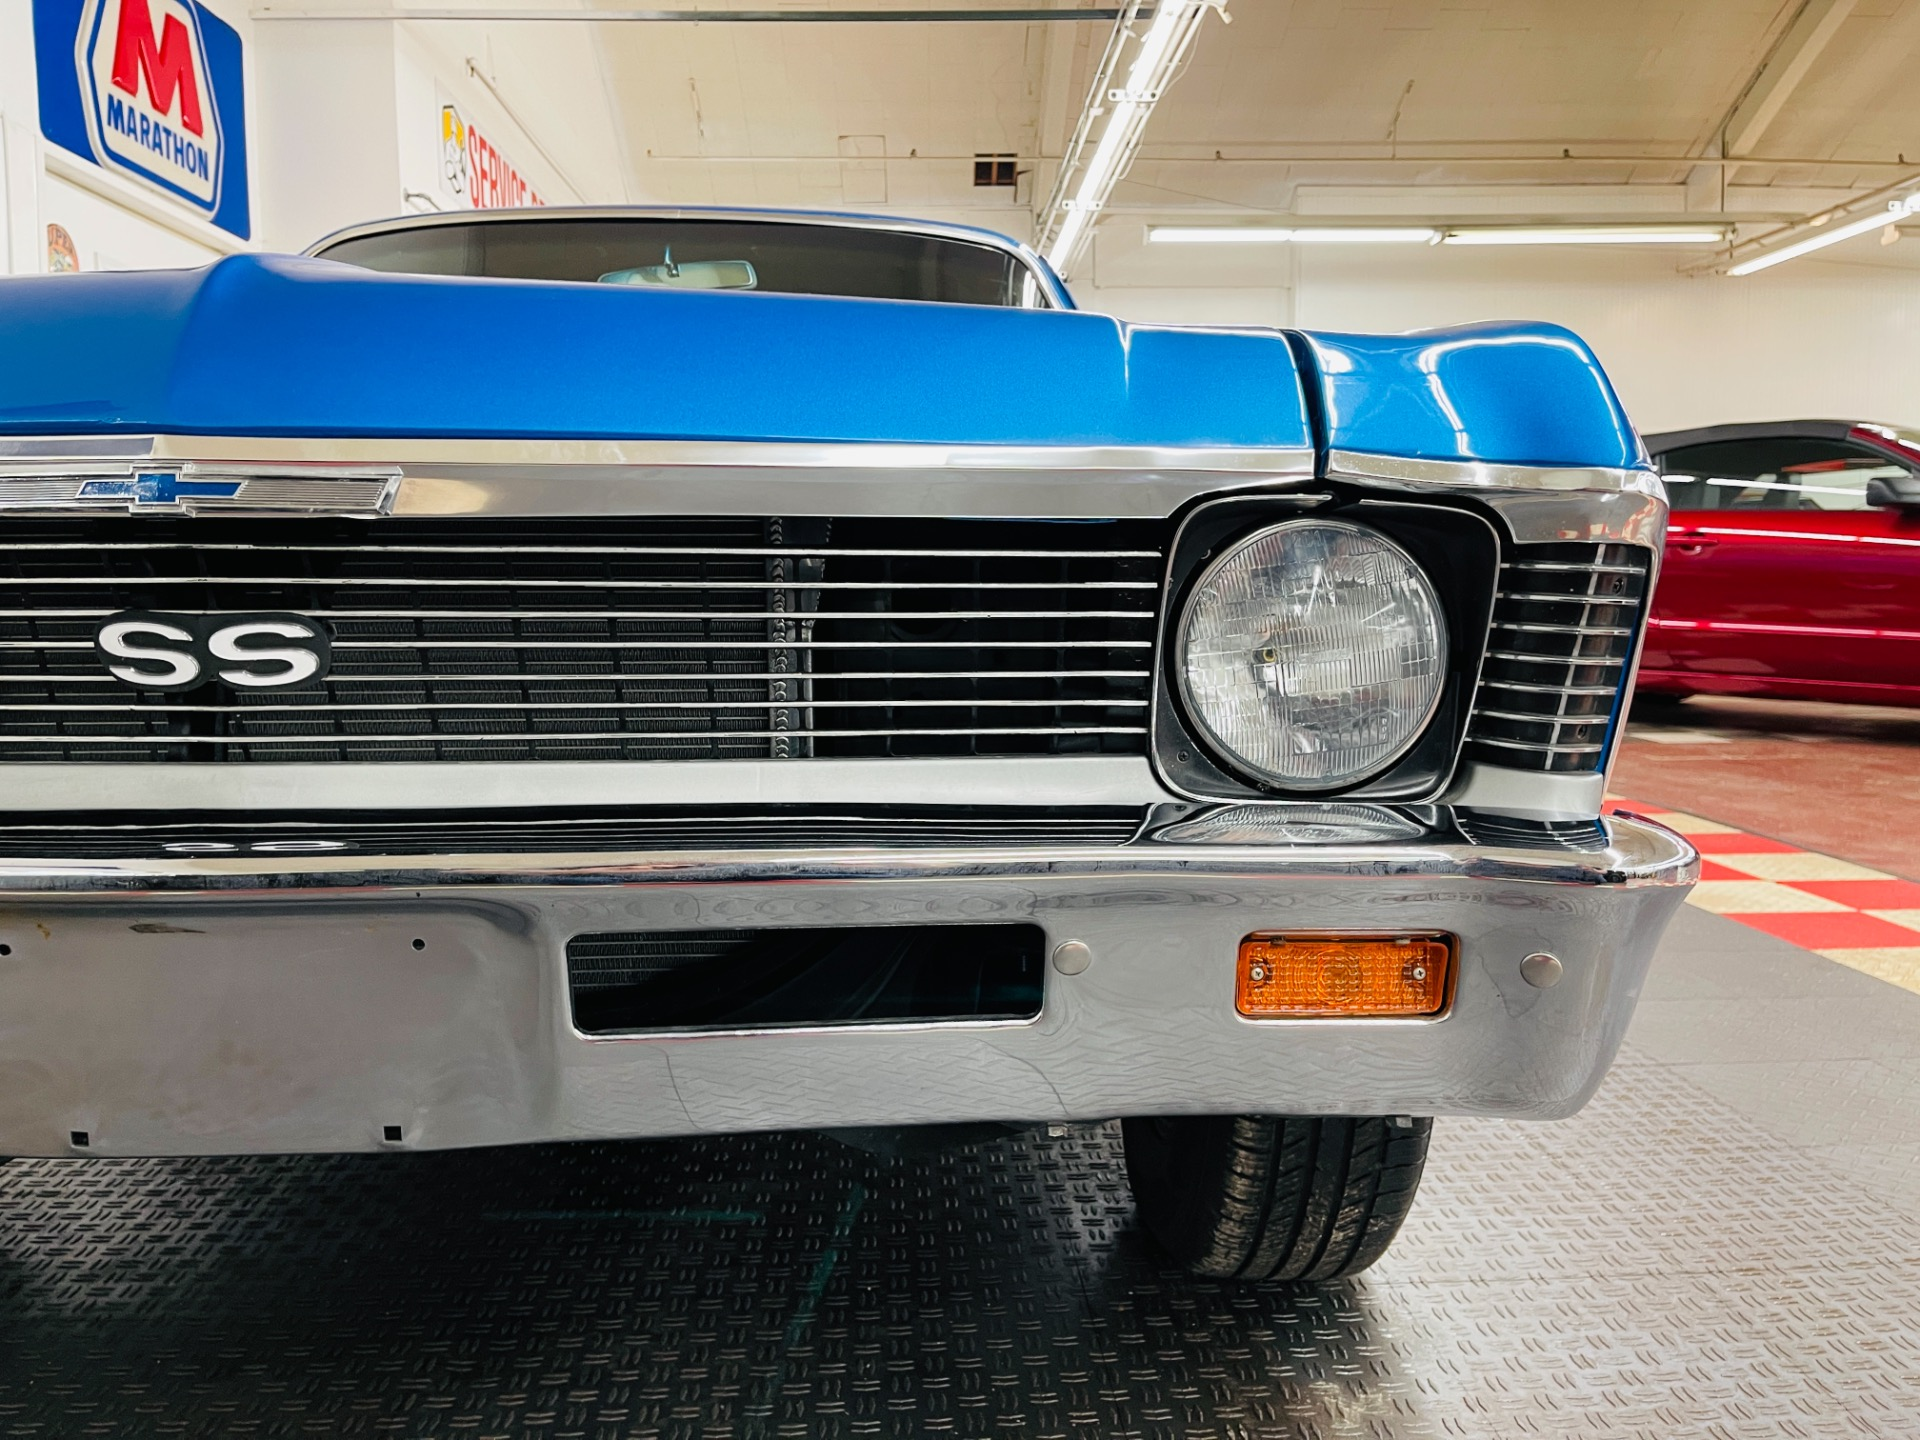 Used 1972 Chevrolet Nova - 350 ENGINE - 4 SPEED TRANS - CLEAN SOUTHERN CAR - SEE VIDEO - | Mundelein, IL